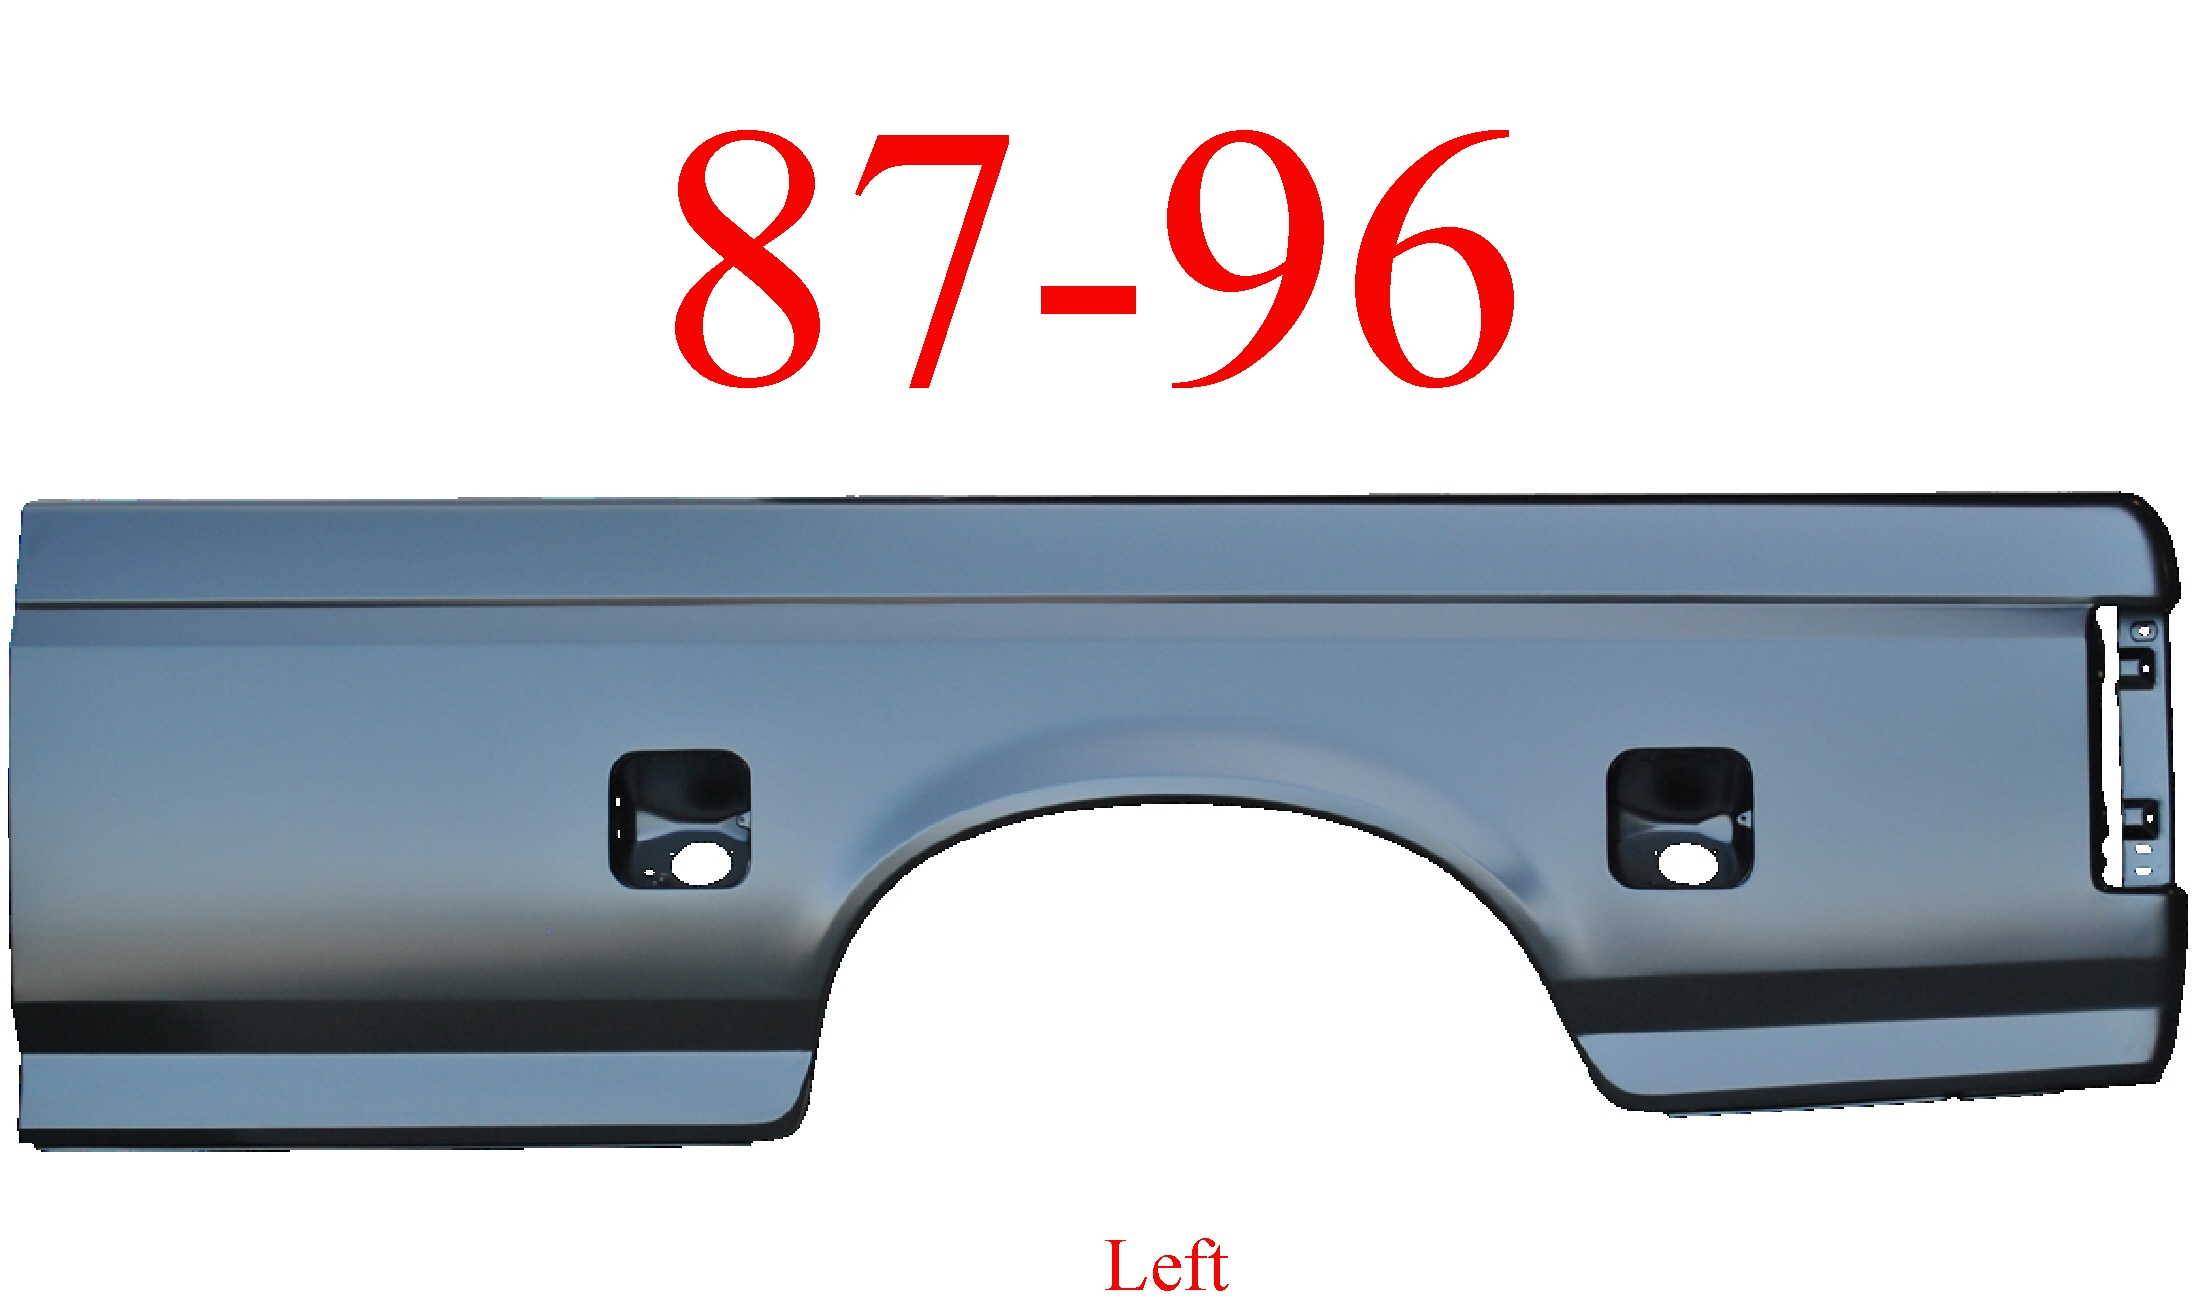 87-96 Ford Left 8' Bed Side Dual Fuel Holes